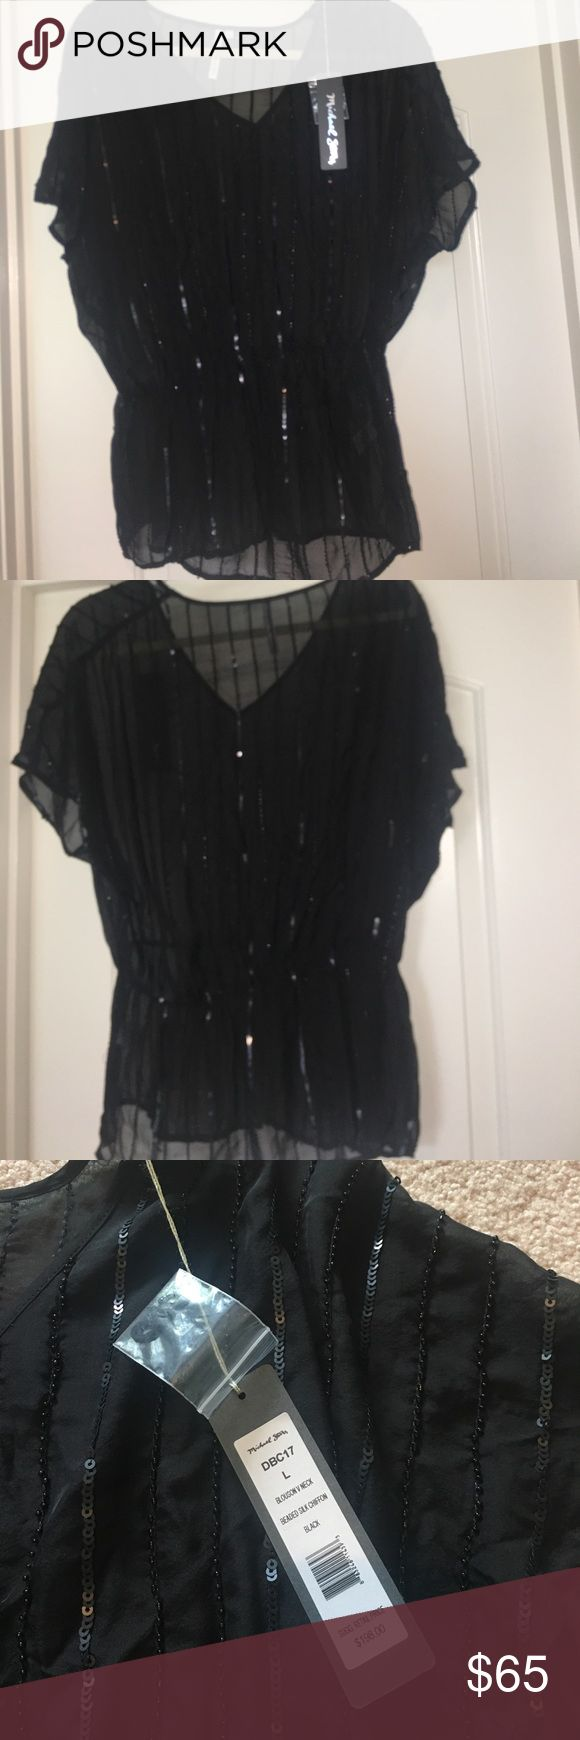 NWT Michael Stars blouson sequined top,style DBC17 New with tags! Black 100% silk sequined/beaded- striped top, dolman sleeves and elastic gathered waist.  Wear over a cami- perfect for dress up or dress down and would look so cute as a beach cover up.  Would keep but is just a little too big for me. Michael Stars Tops Blouses